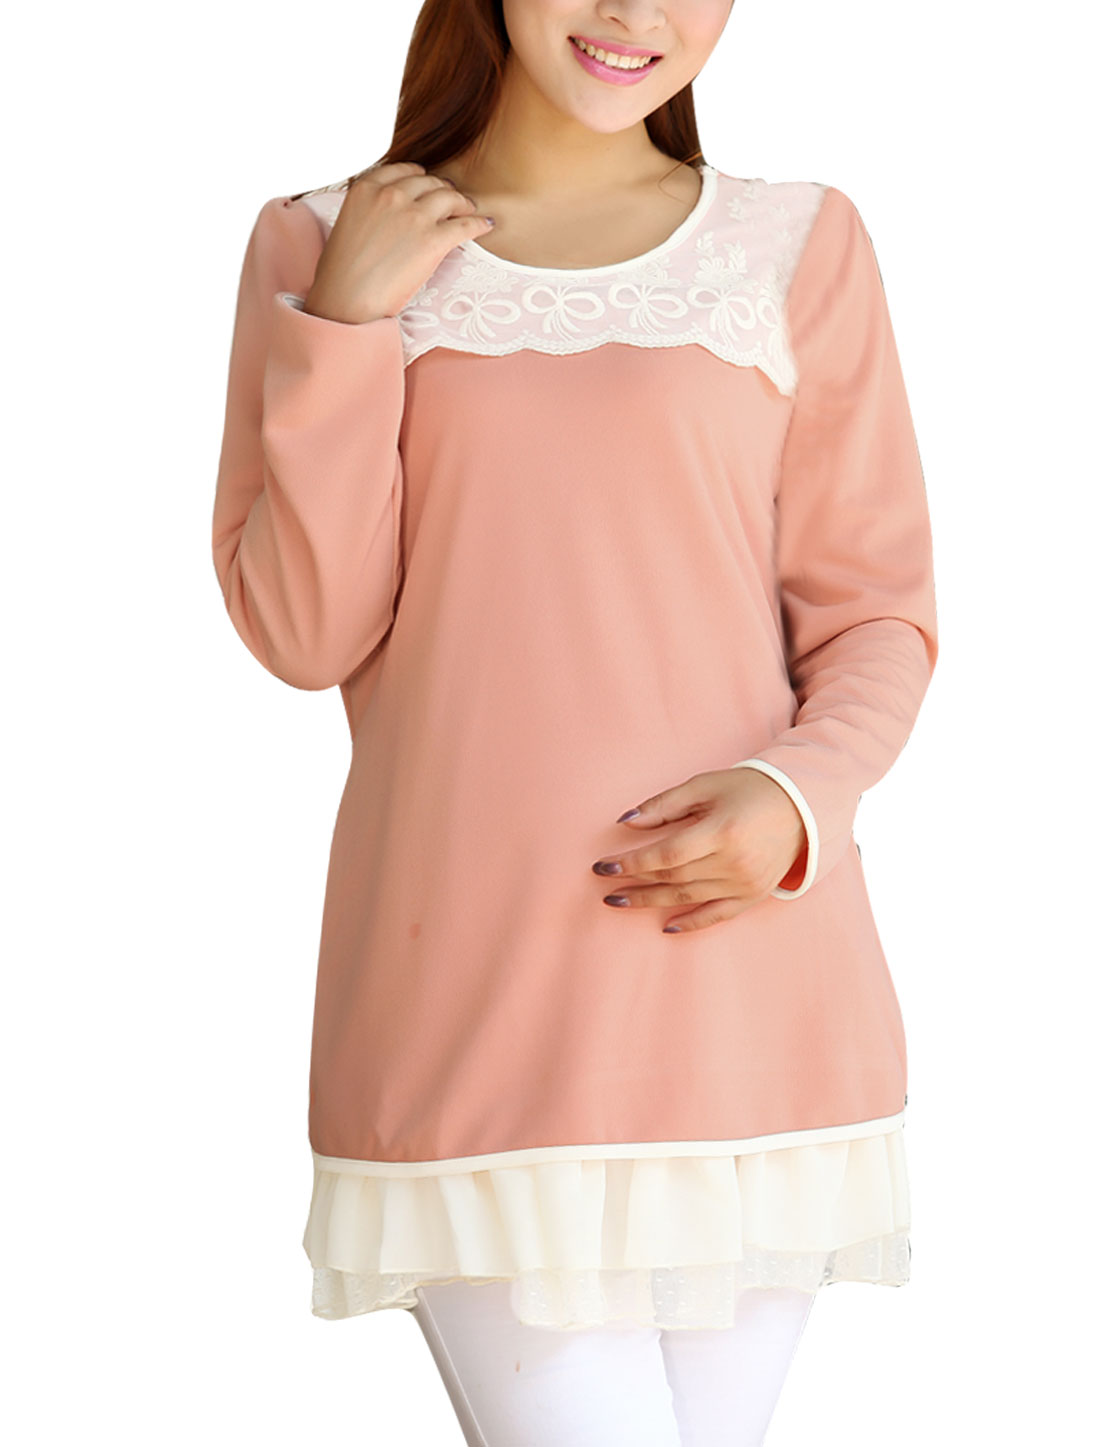 Pregnant Women Pullover Crochet Detail Top Shirt Pink M